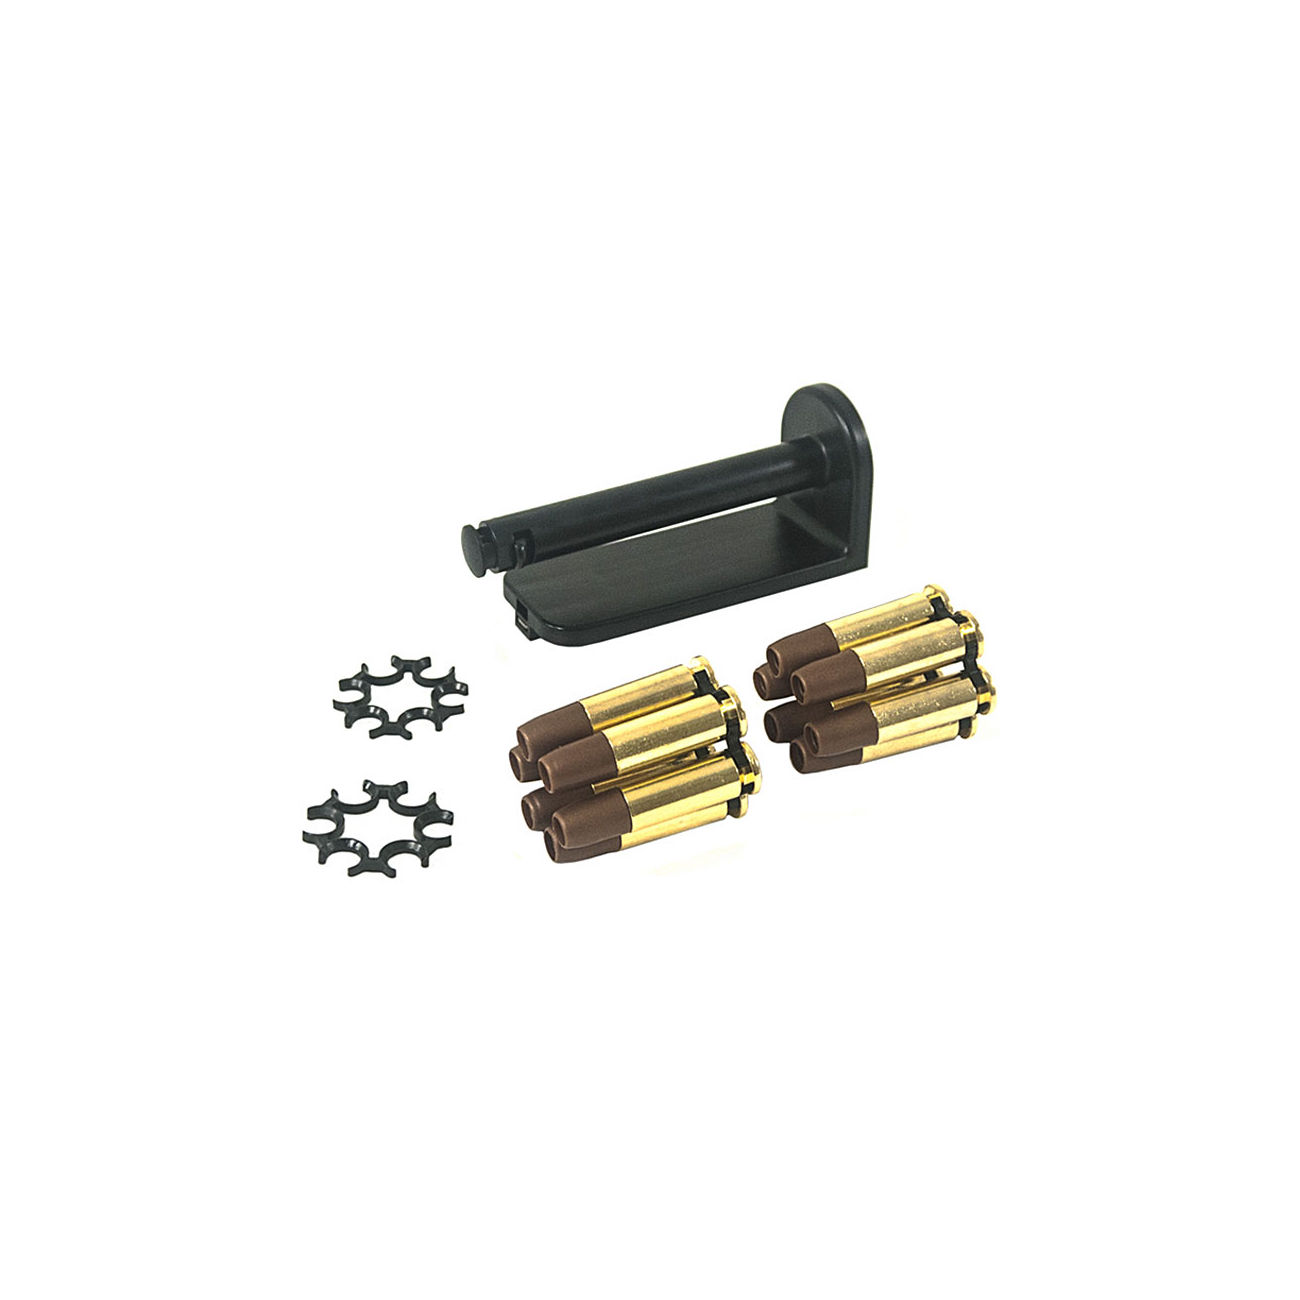 ASG Dan Wesson Moon Clip Set mit 12 Ersatzhülsen - 6mm BB Airsoft Version 0